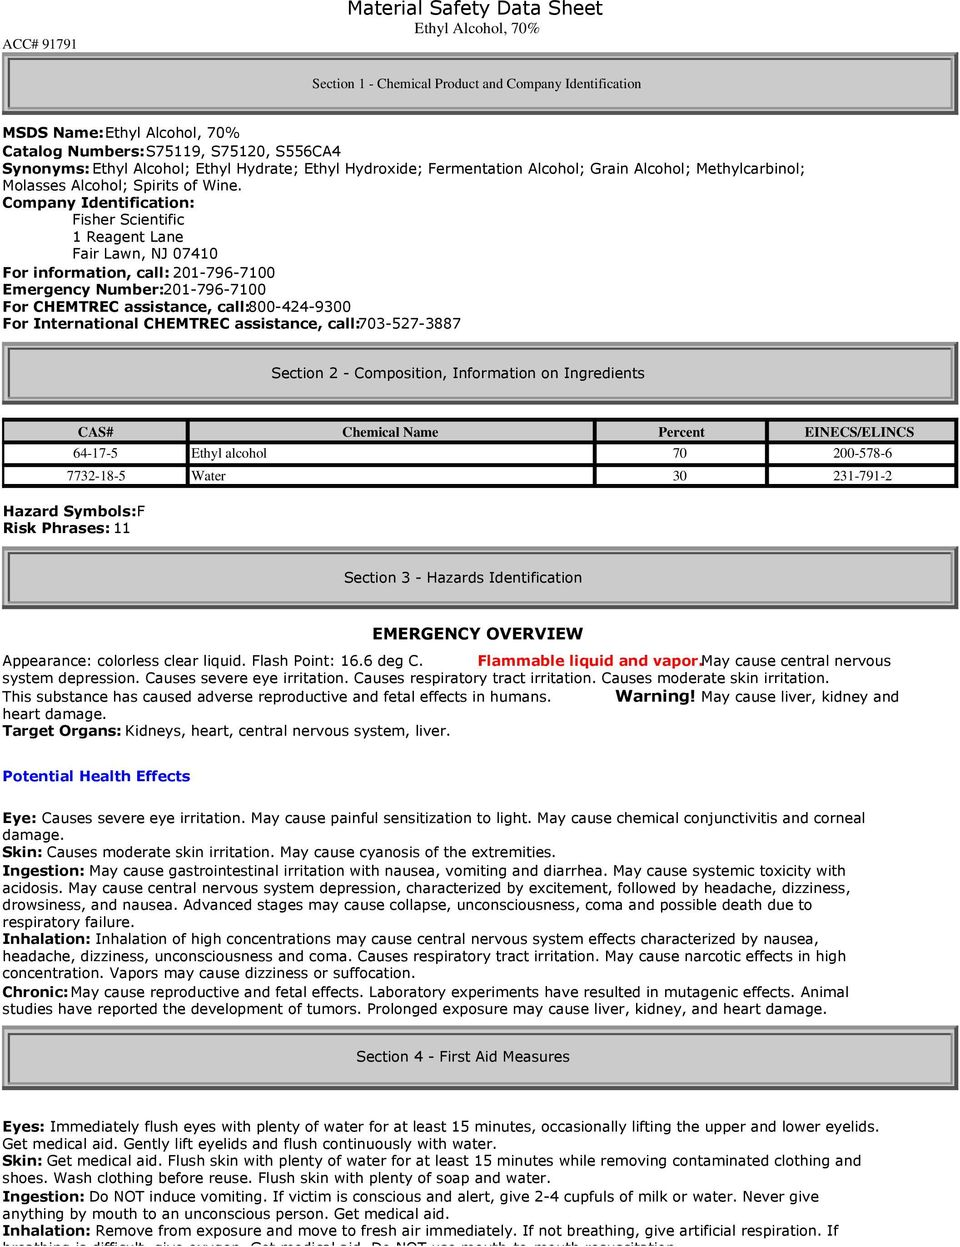 Material Safety Data Sheet Ethyl Alcohol 70 Pdf Free Download